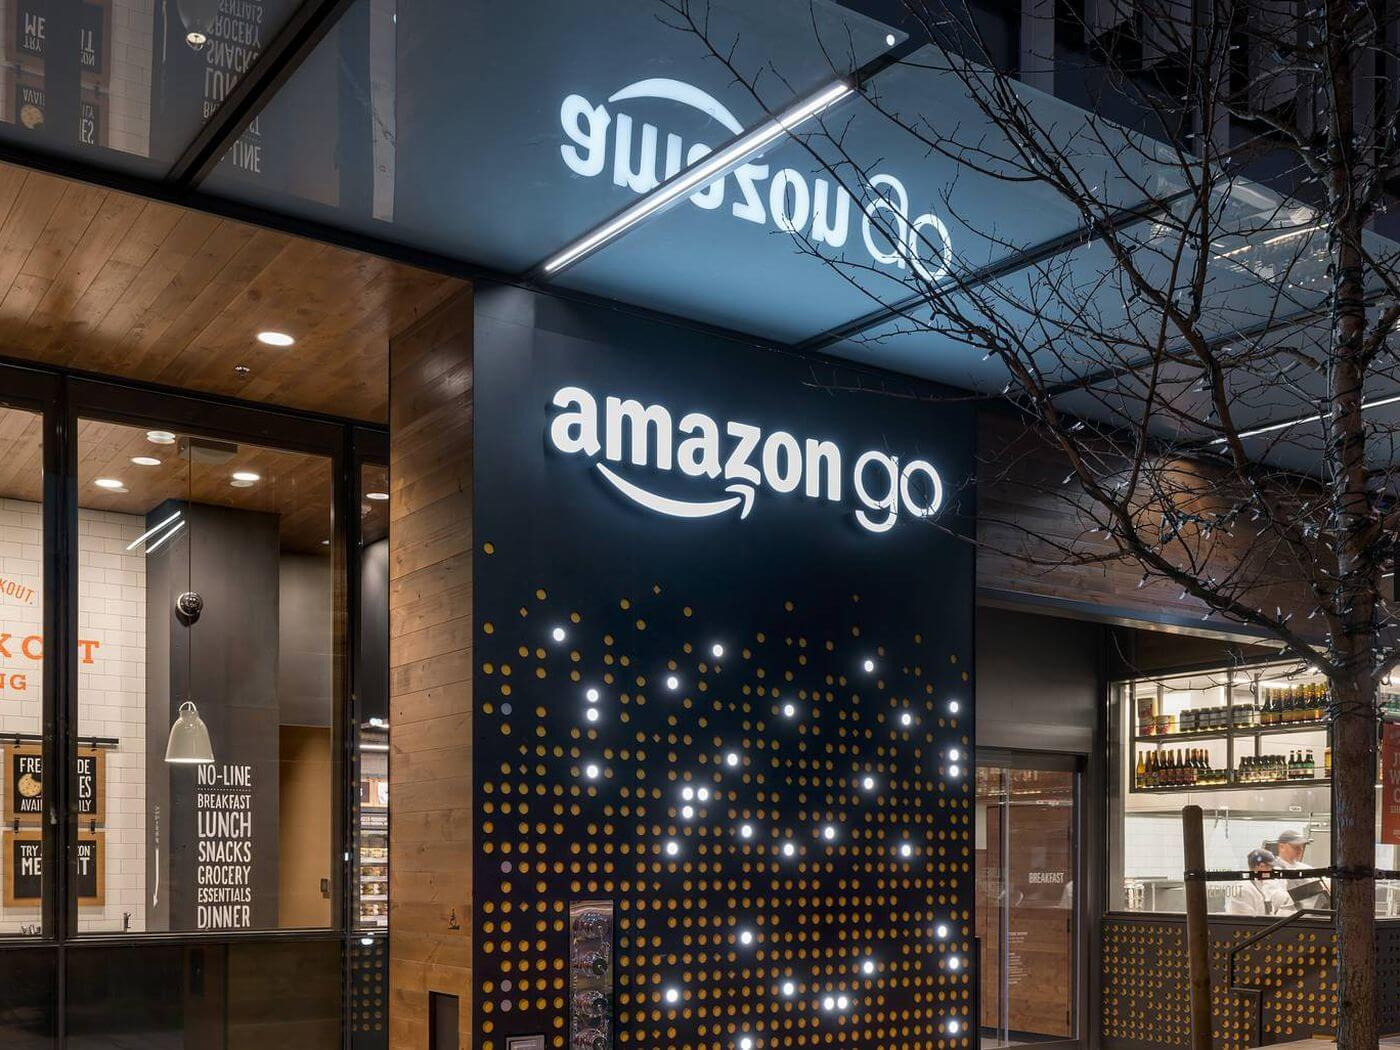 Up to 3000 Amazon Go stores may be on the way